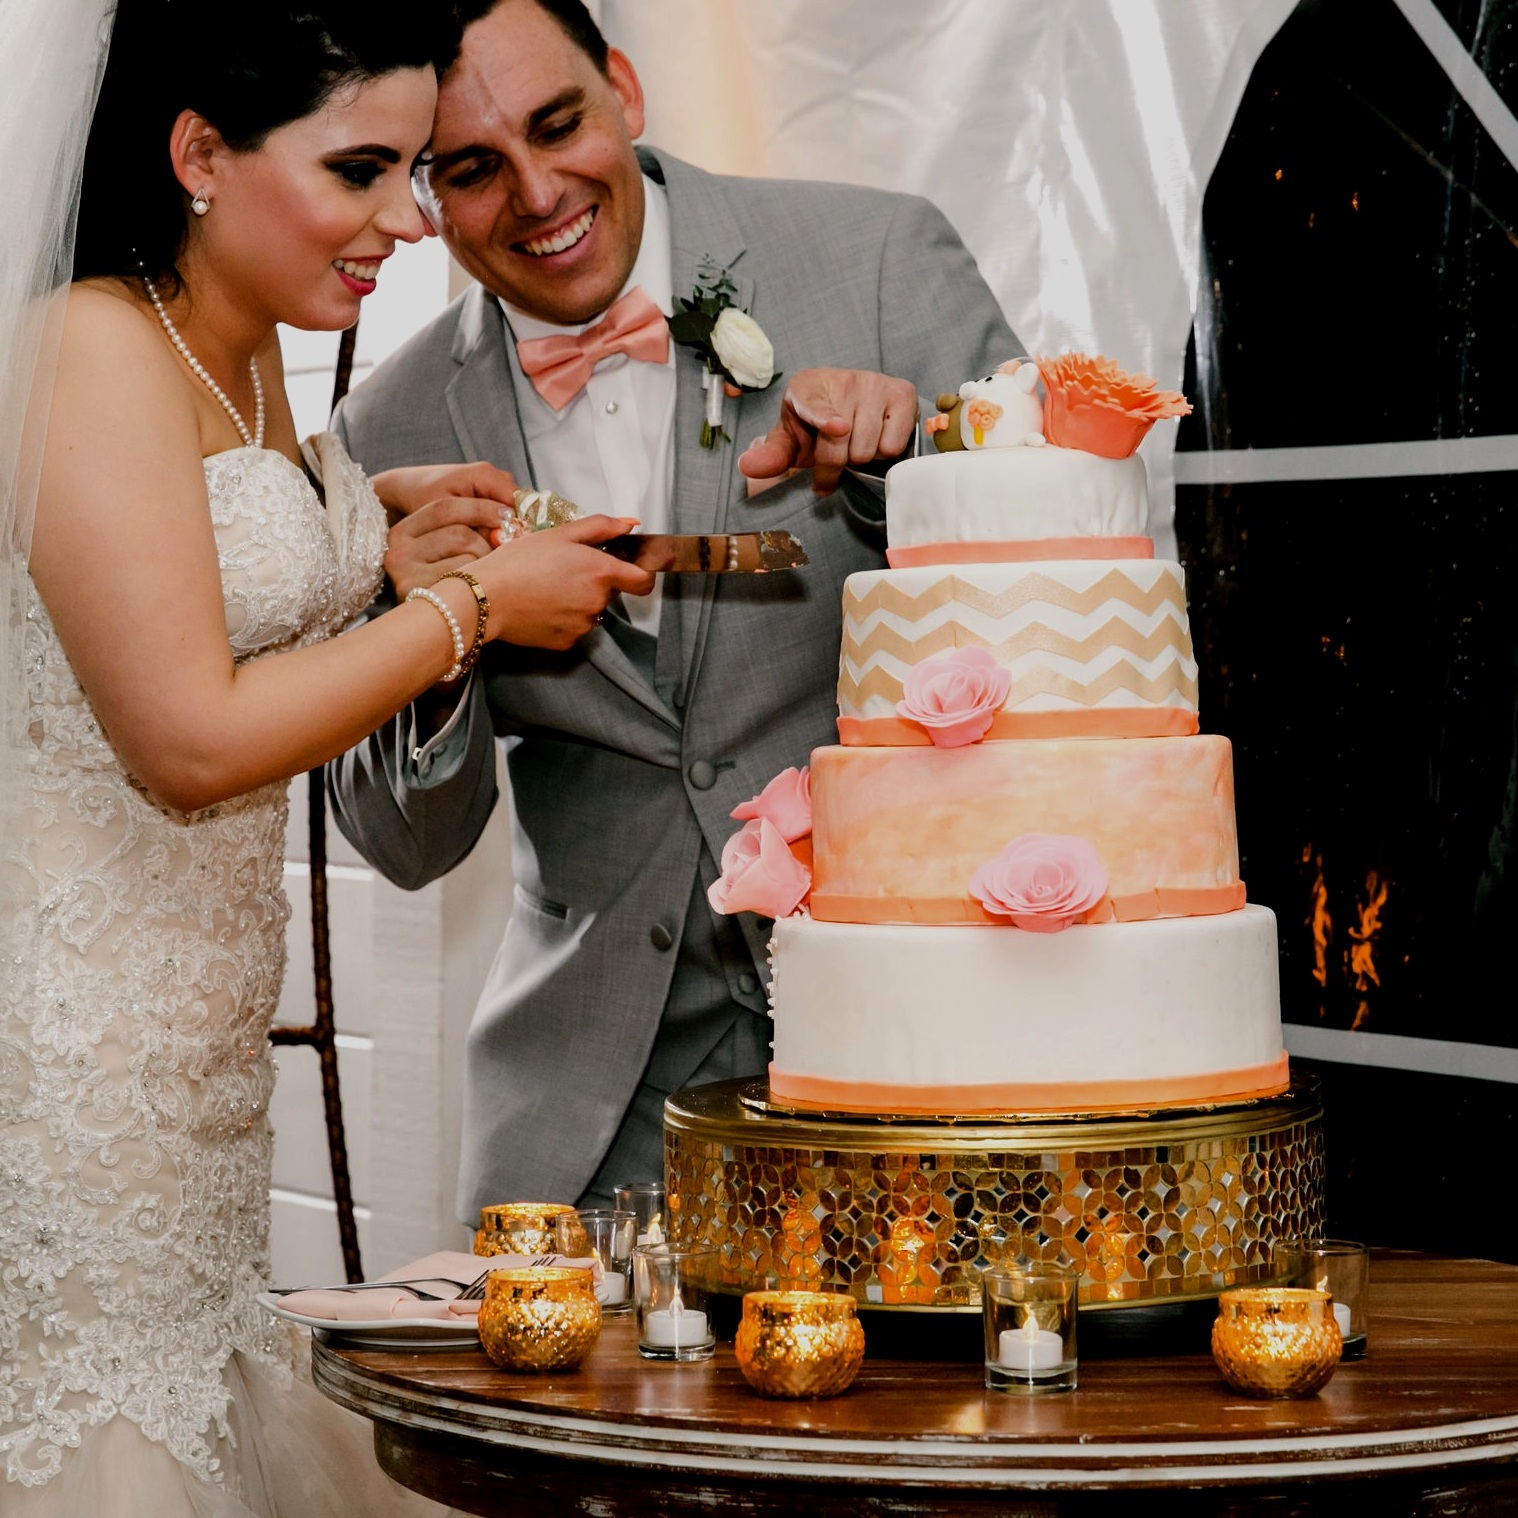 Over 150 weddings photographed and filmed -